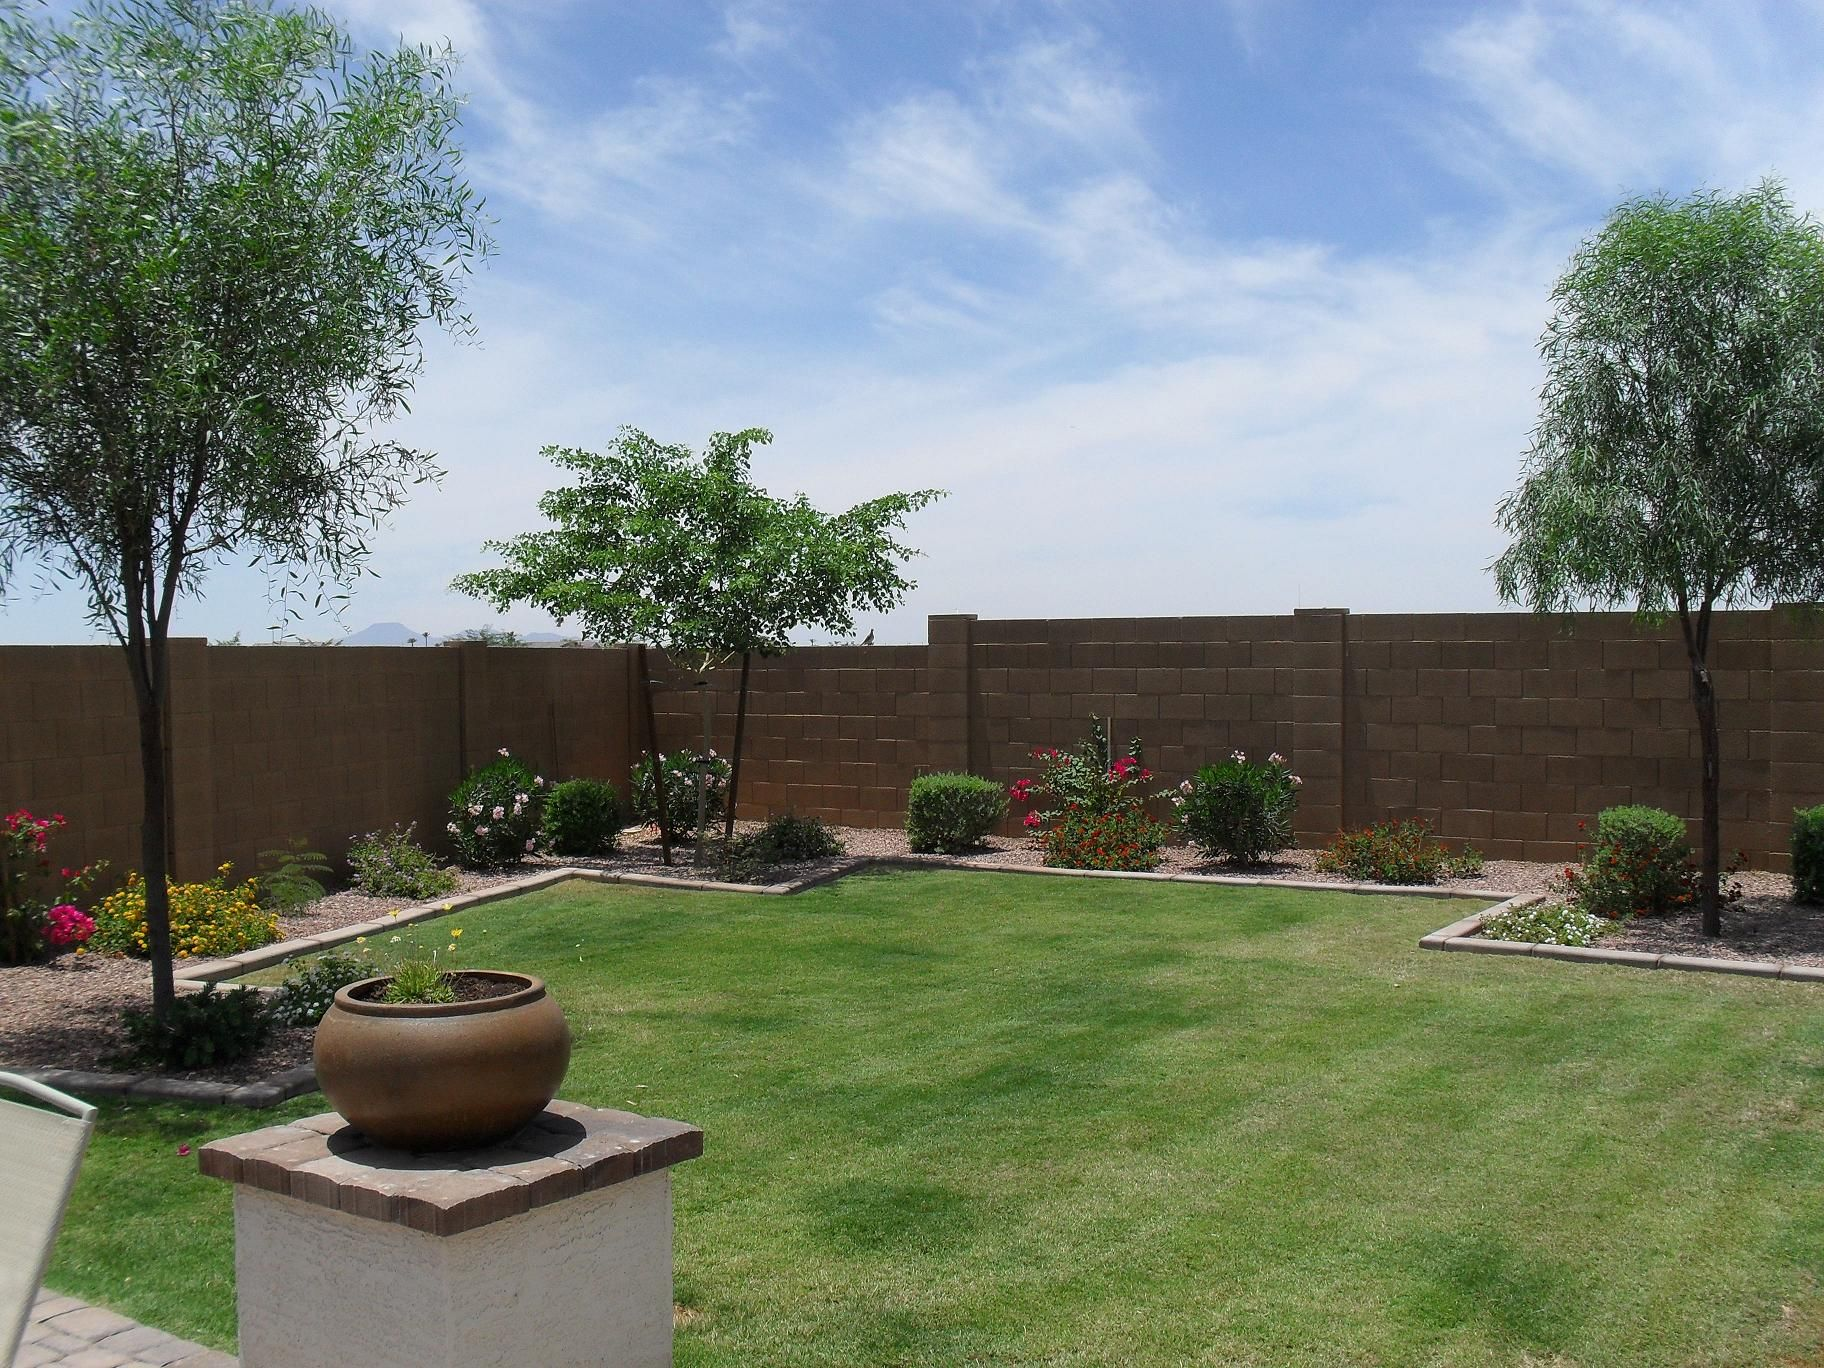 Arizona Backyard Arizona Backyard Backyard Landscaping Designs